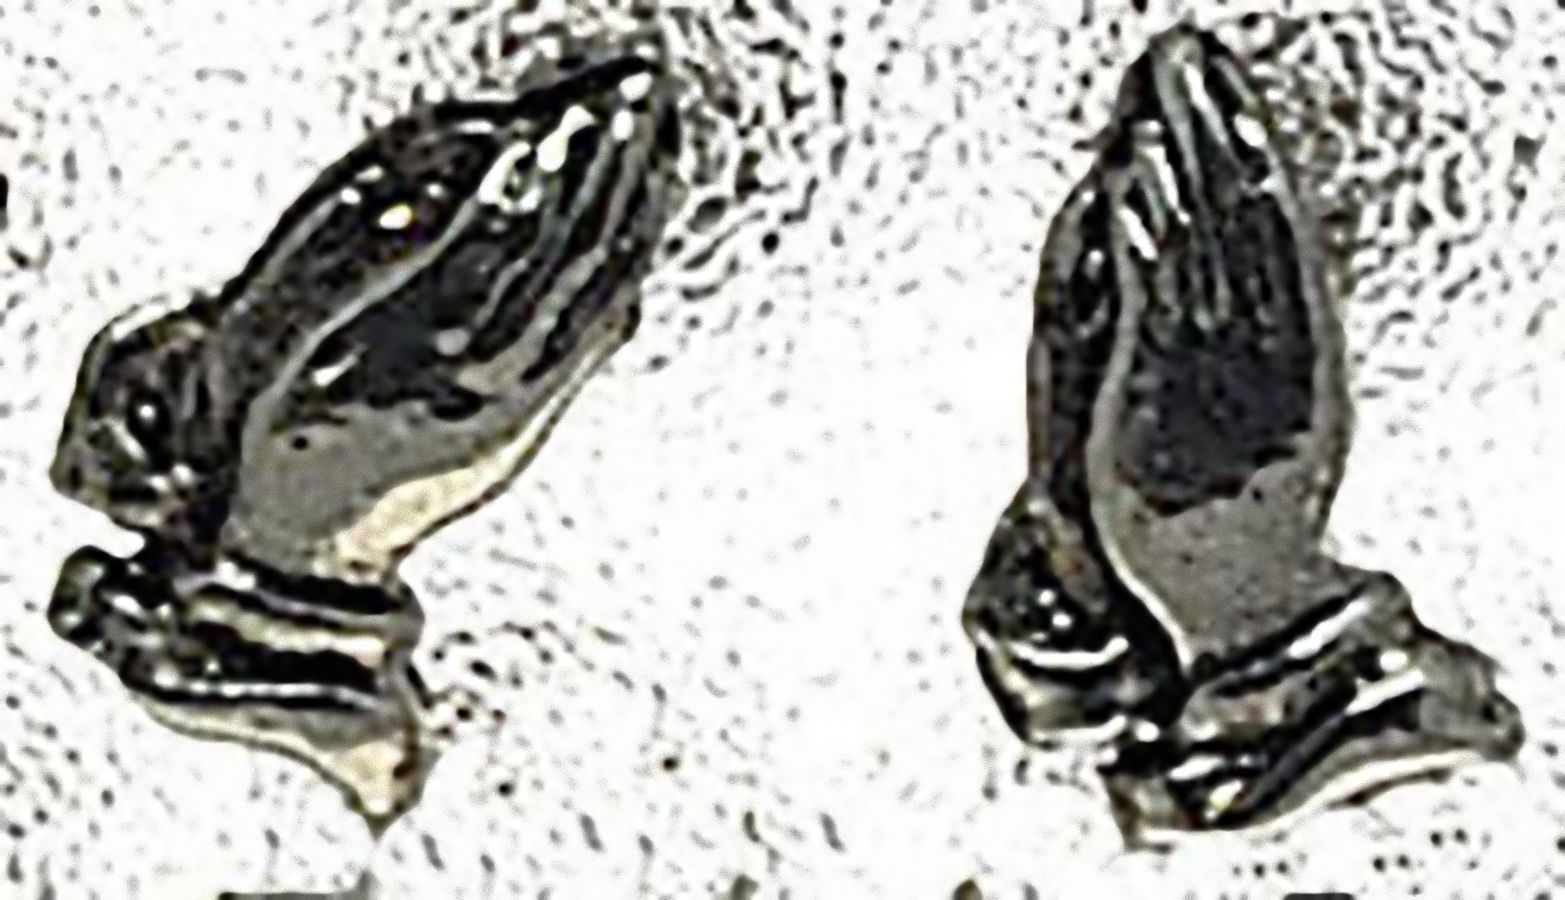 NICE Jesus praying hand Sterling Silver Stud Earring Jewelry - $19.70